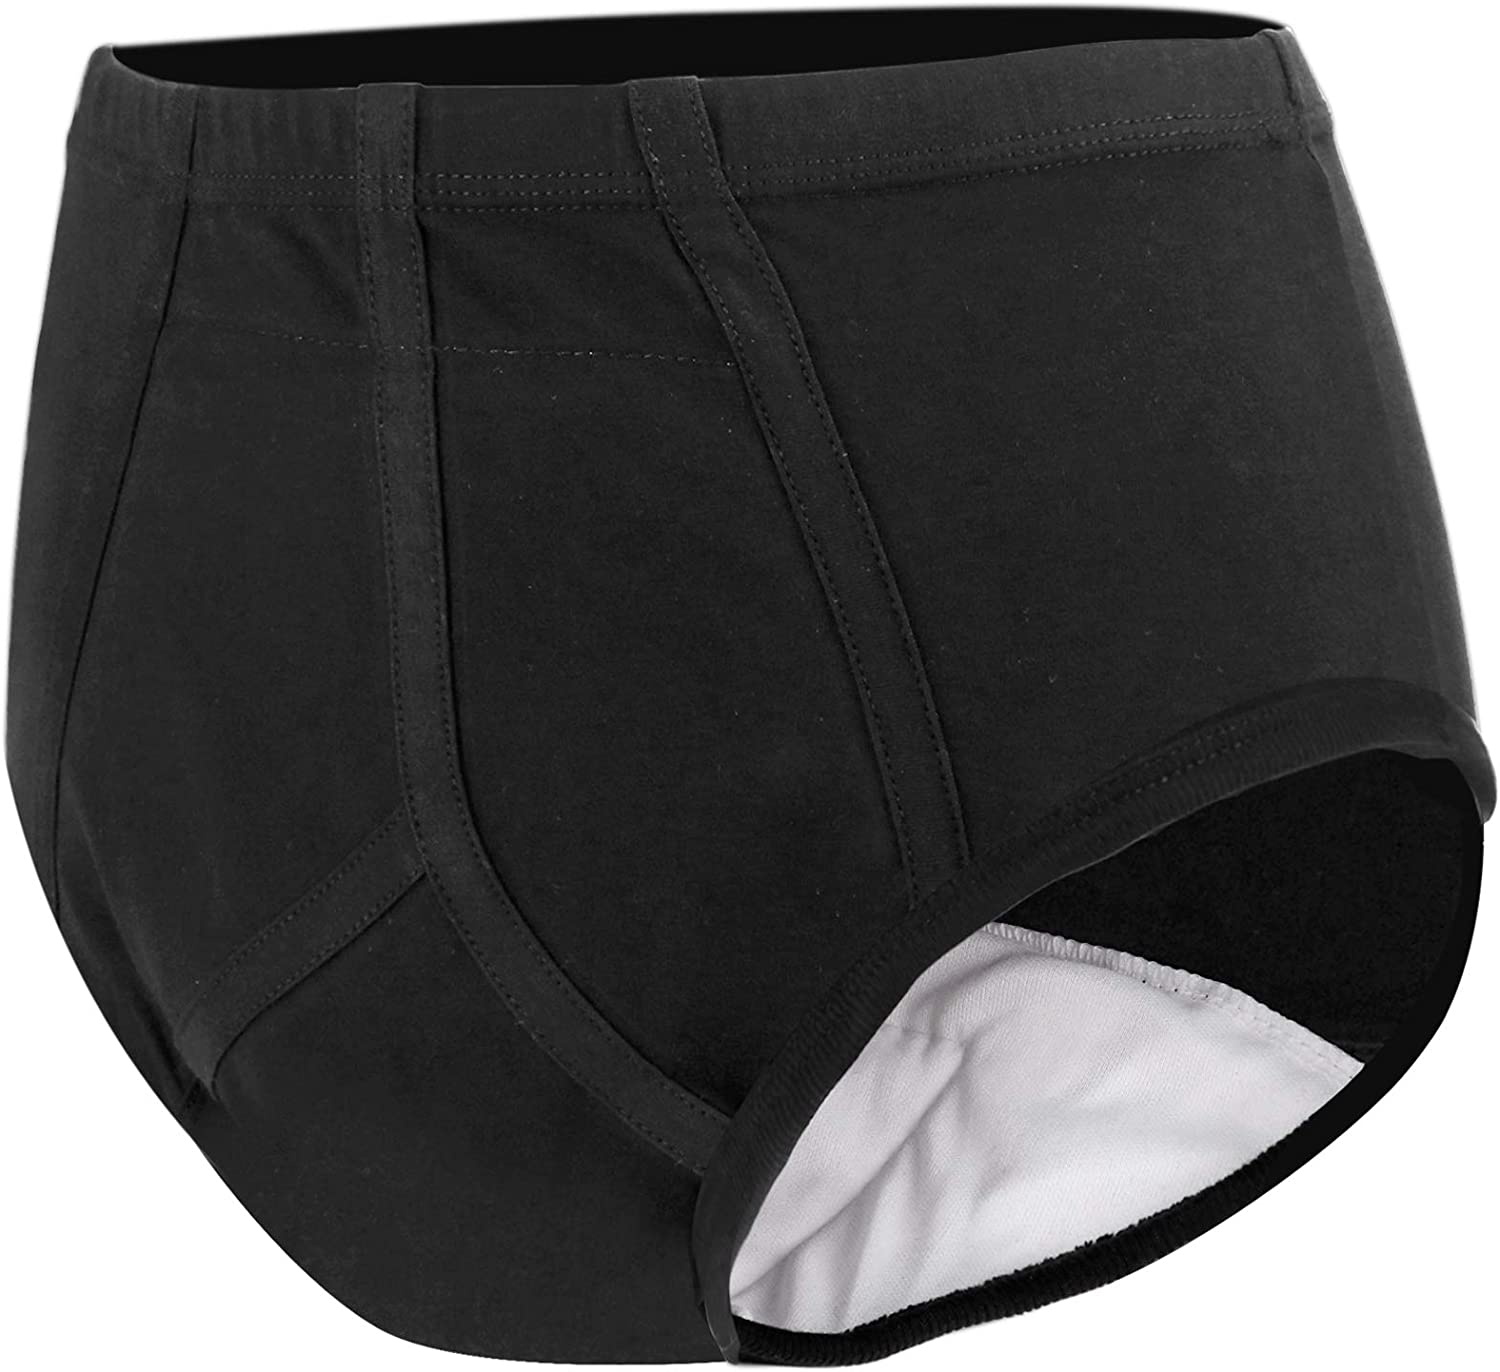 Men's Incontinence Underwear with Built in Absorbent Pad Surgical Recovery Washable Reusable Incontinence Briefs for Prostate Surgery (Black, Large): Health & Personal Care